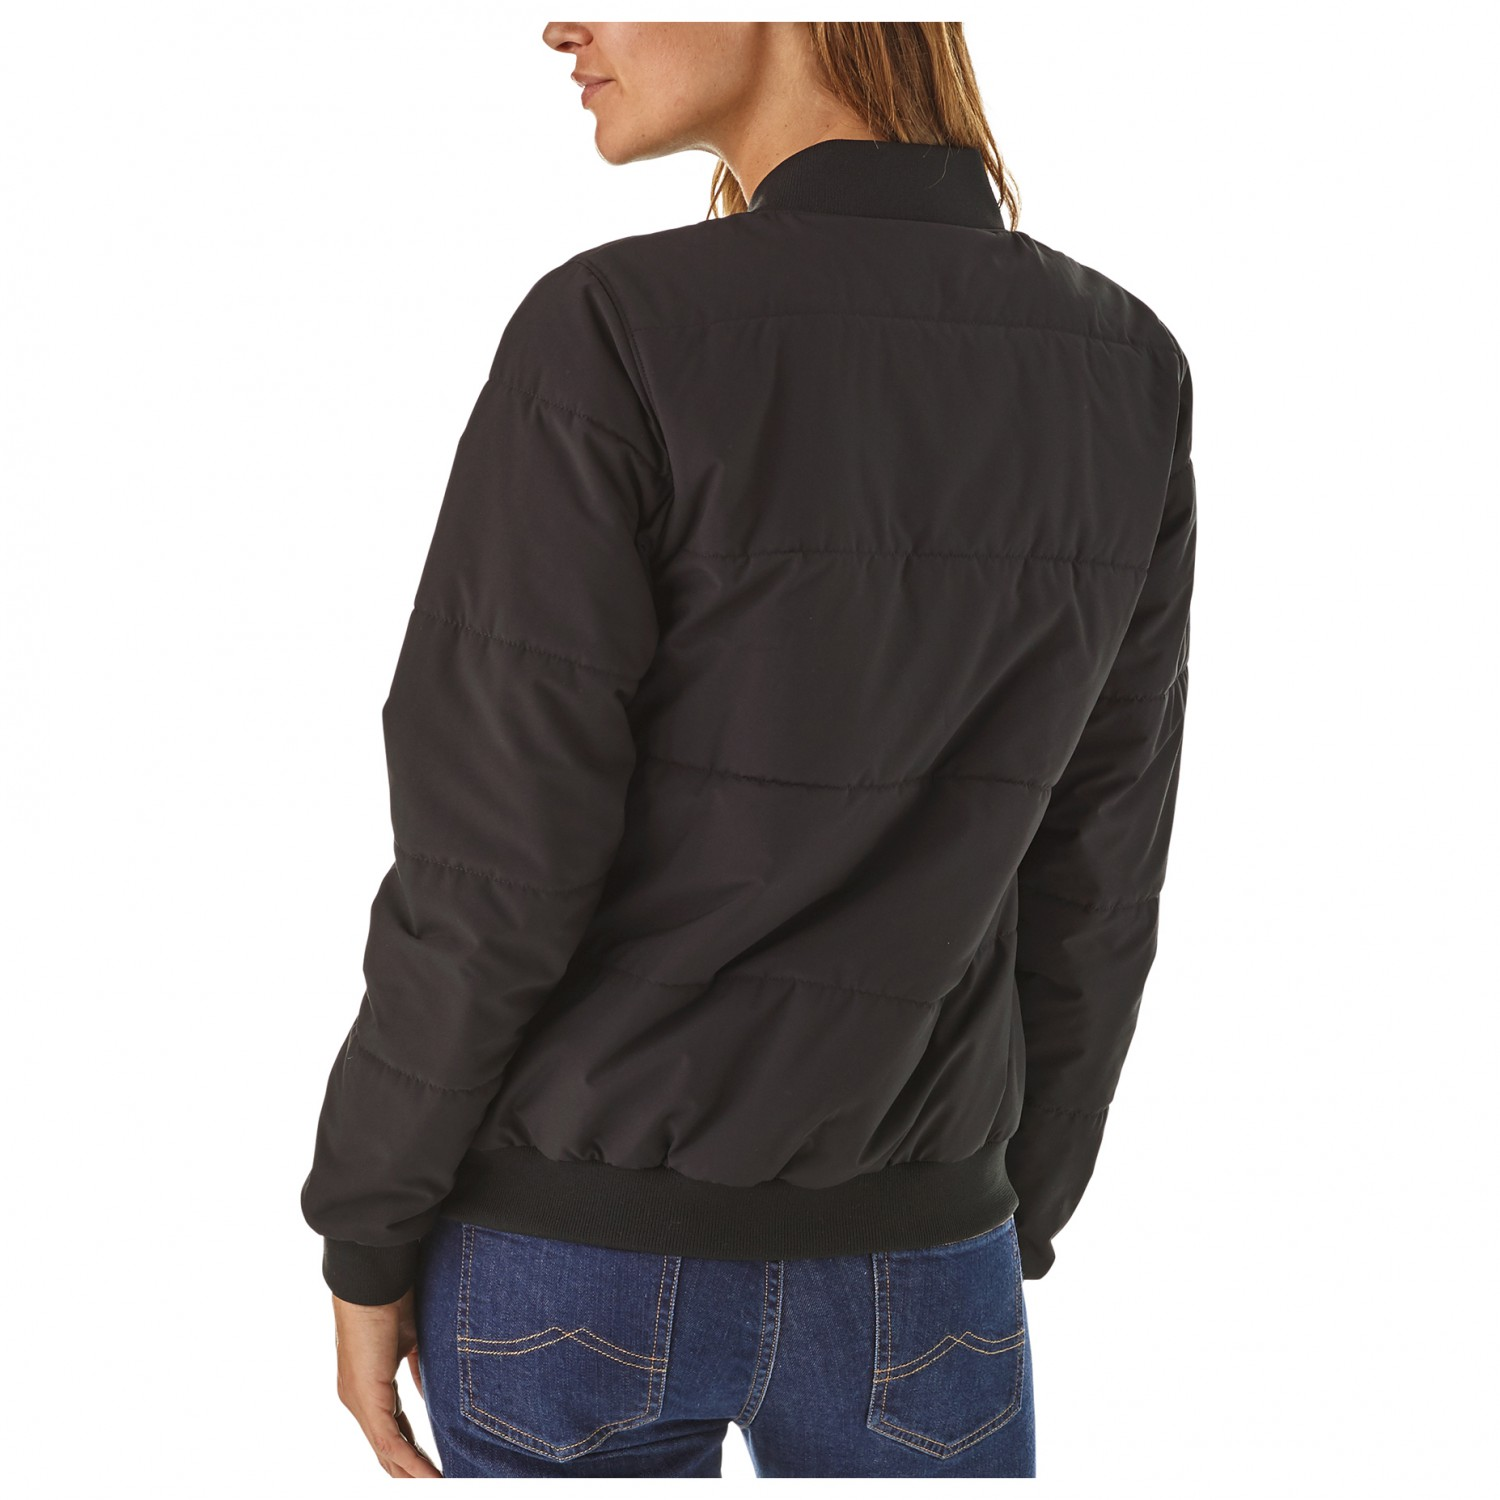 95b47097232 Patagonia - Women s Zemer Bomber Jacket - Synthetic jacket ...